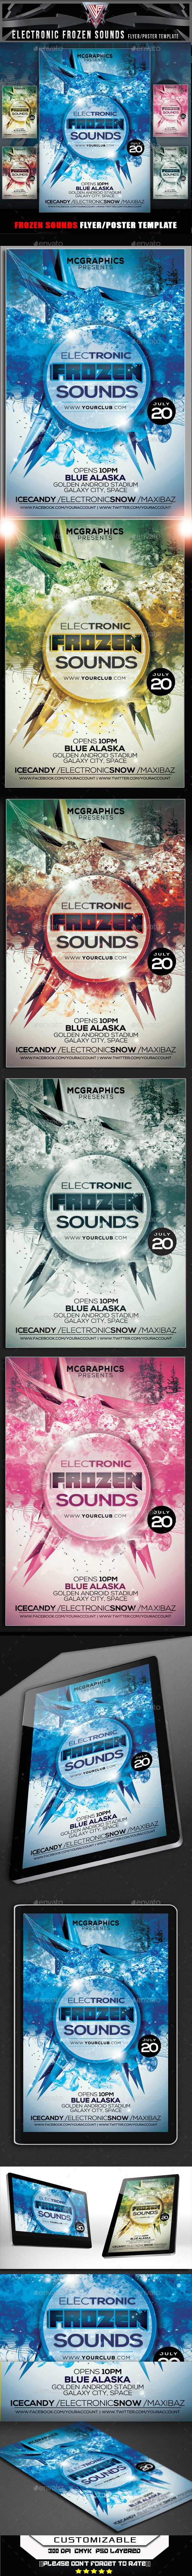 Frozen Sounds Flyer Template - Flyers Print Templates